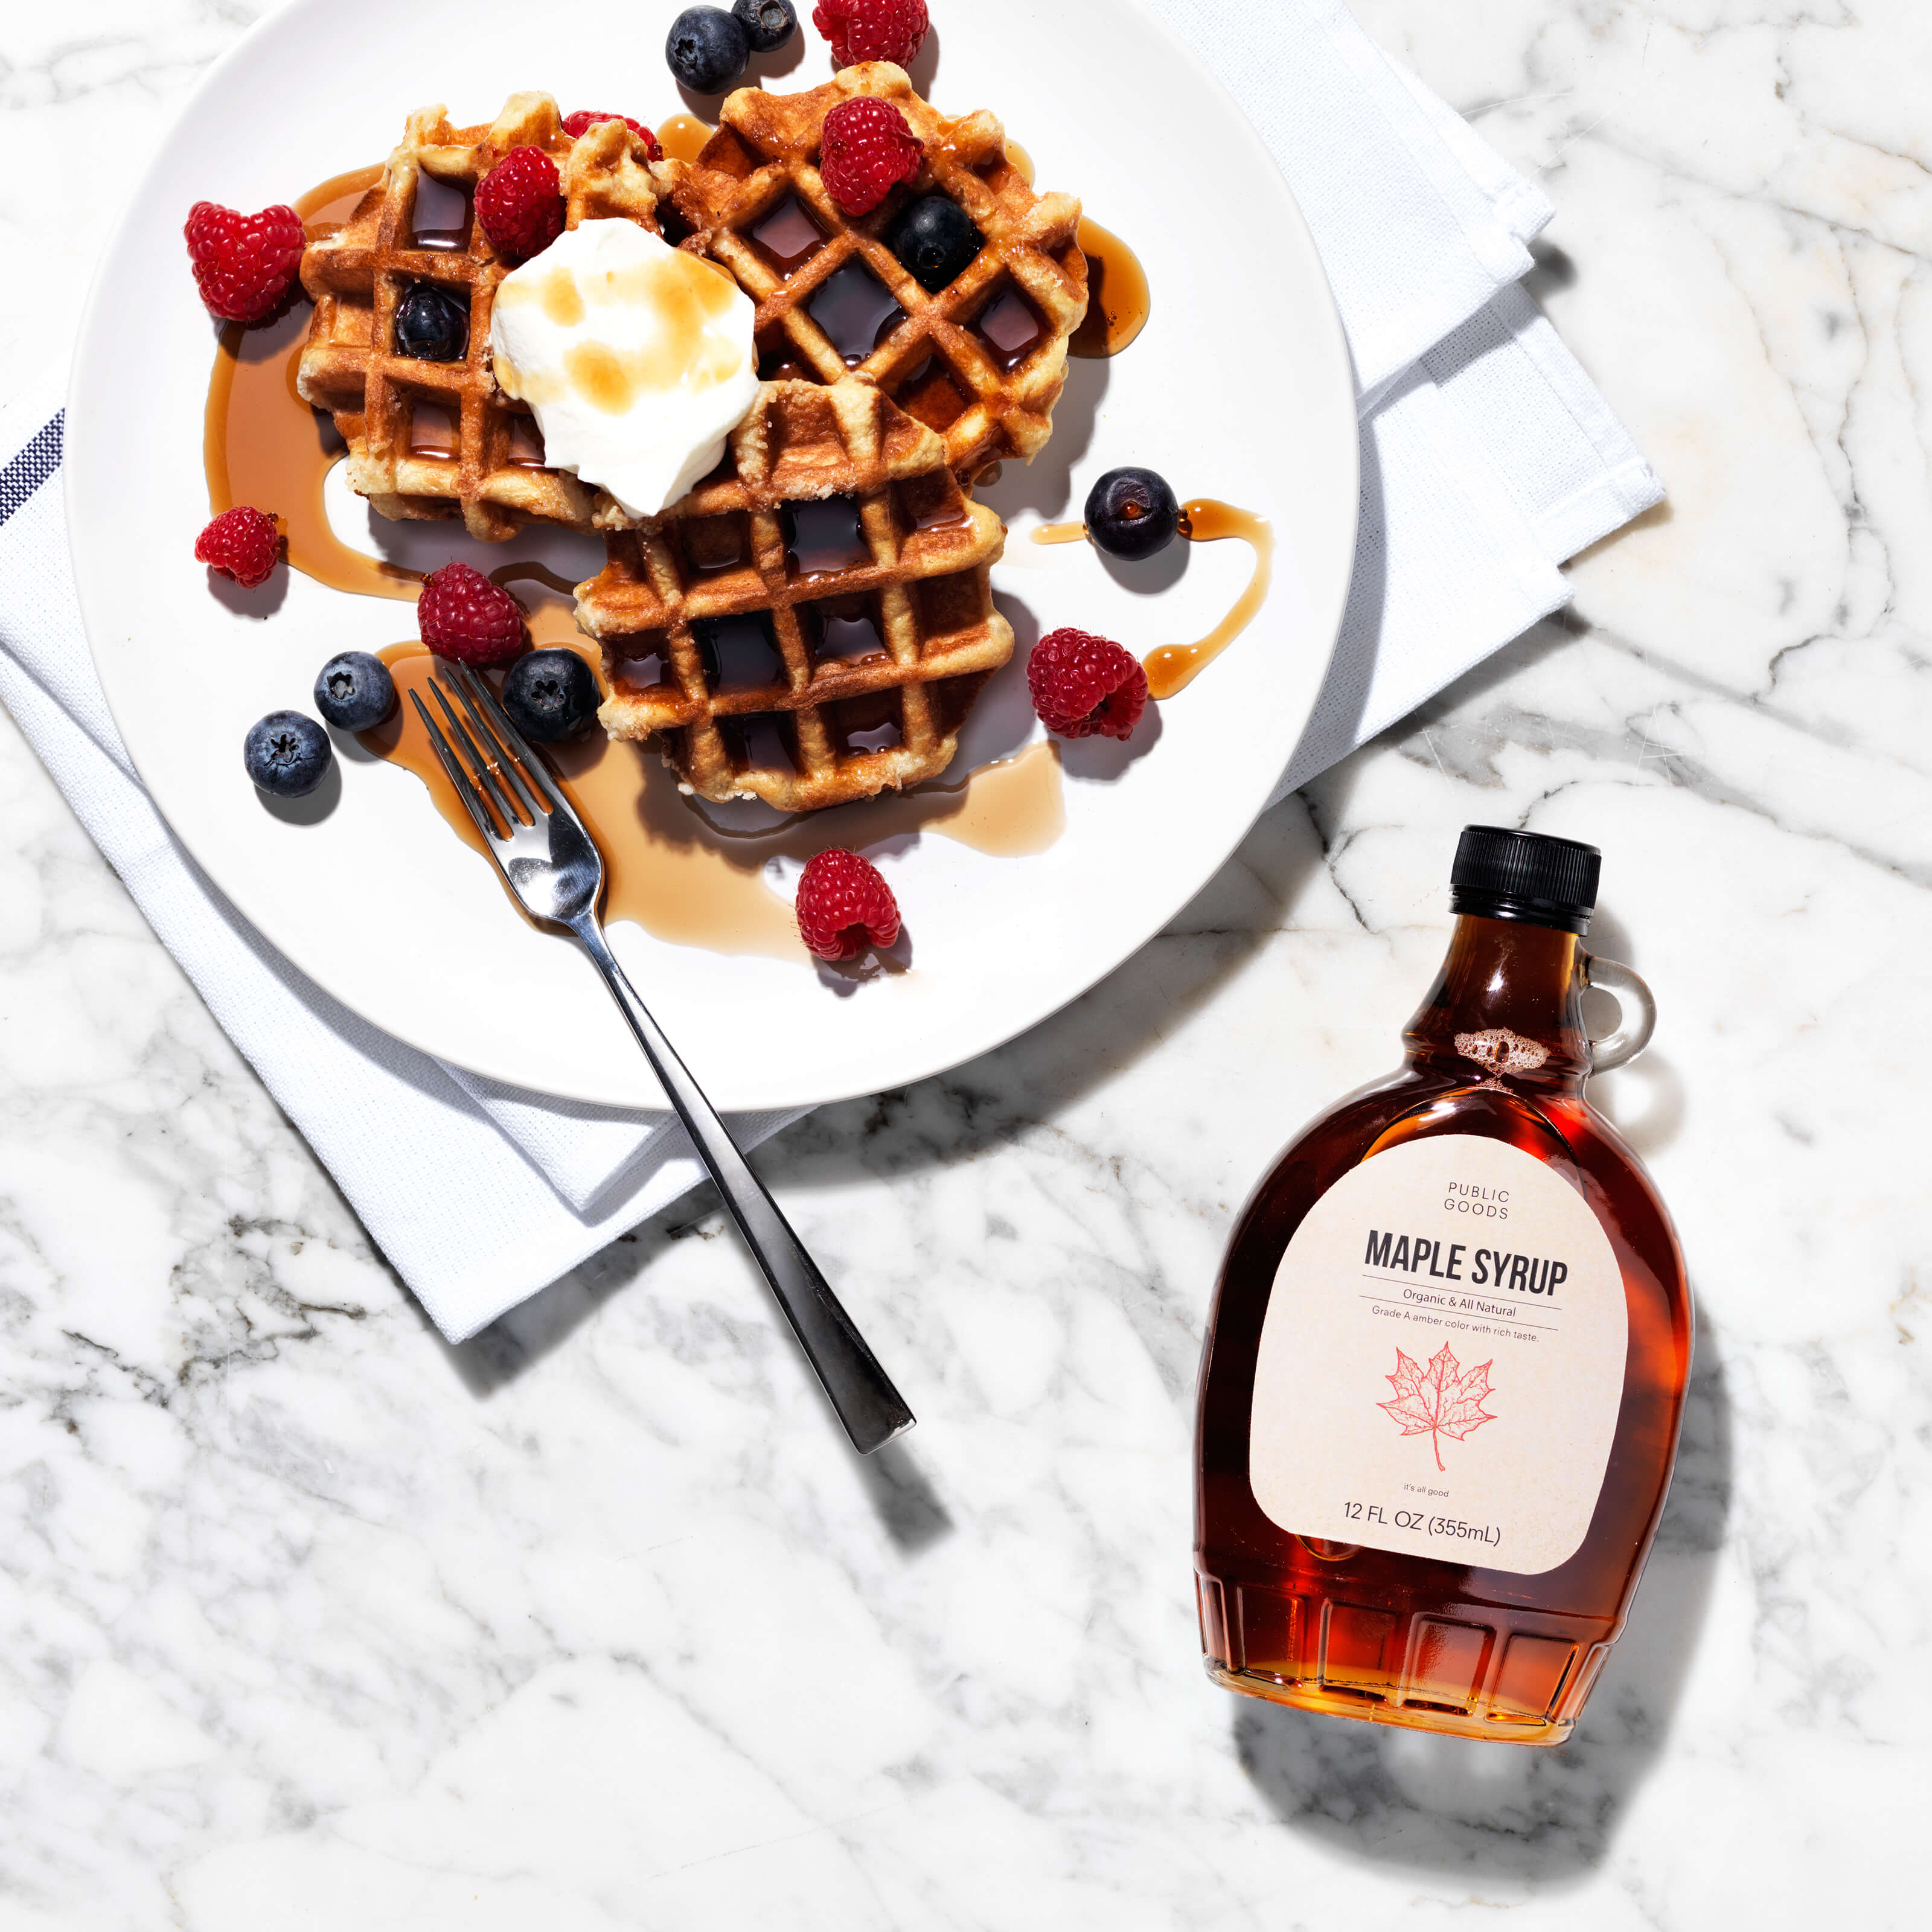 public goods maple syrup, waffles and fork on plate